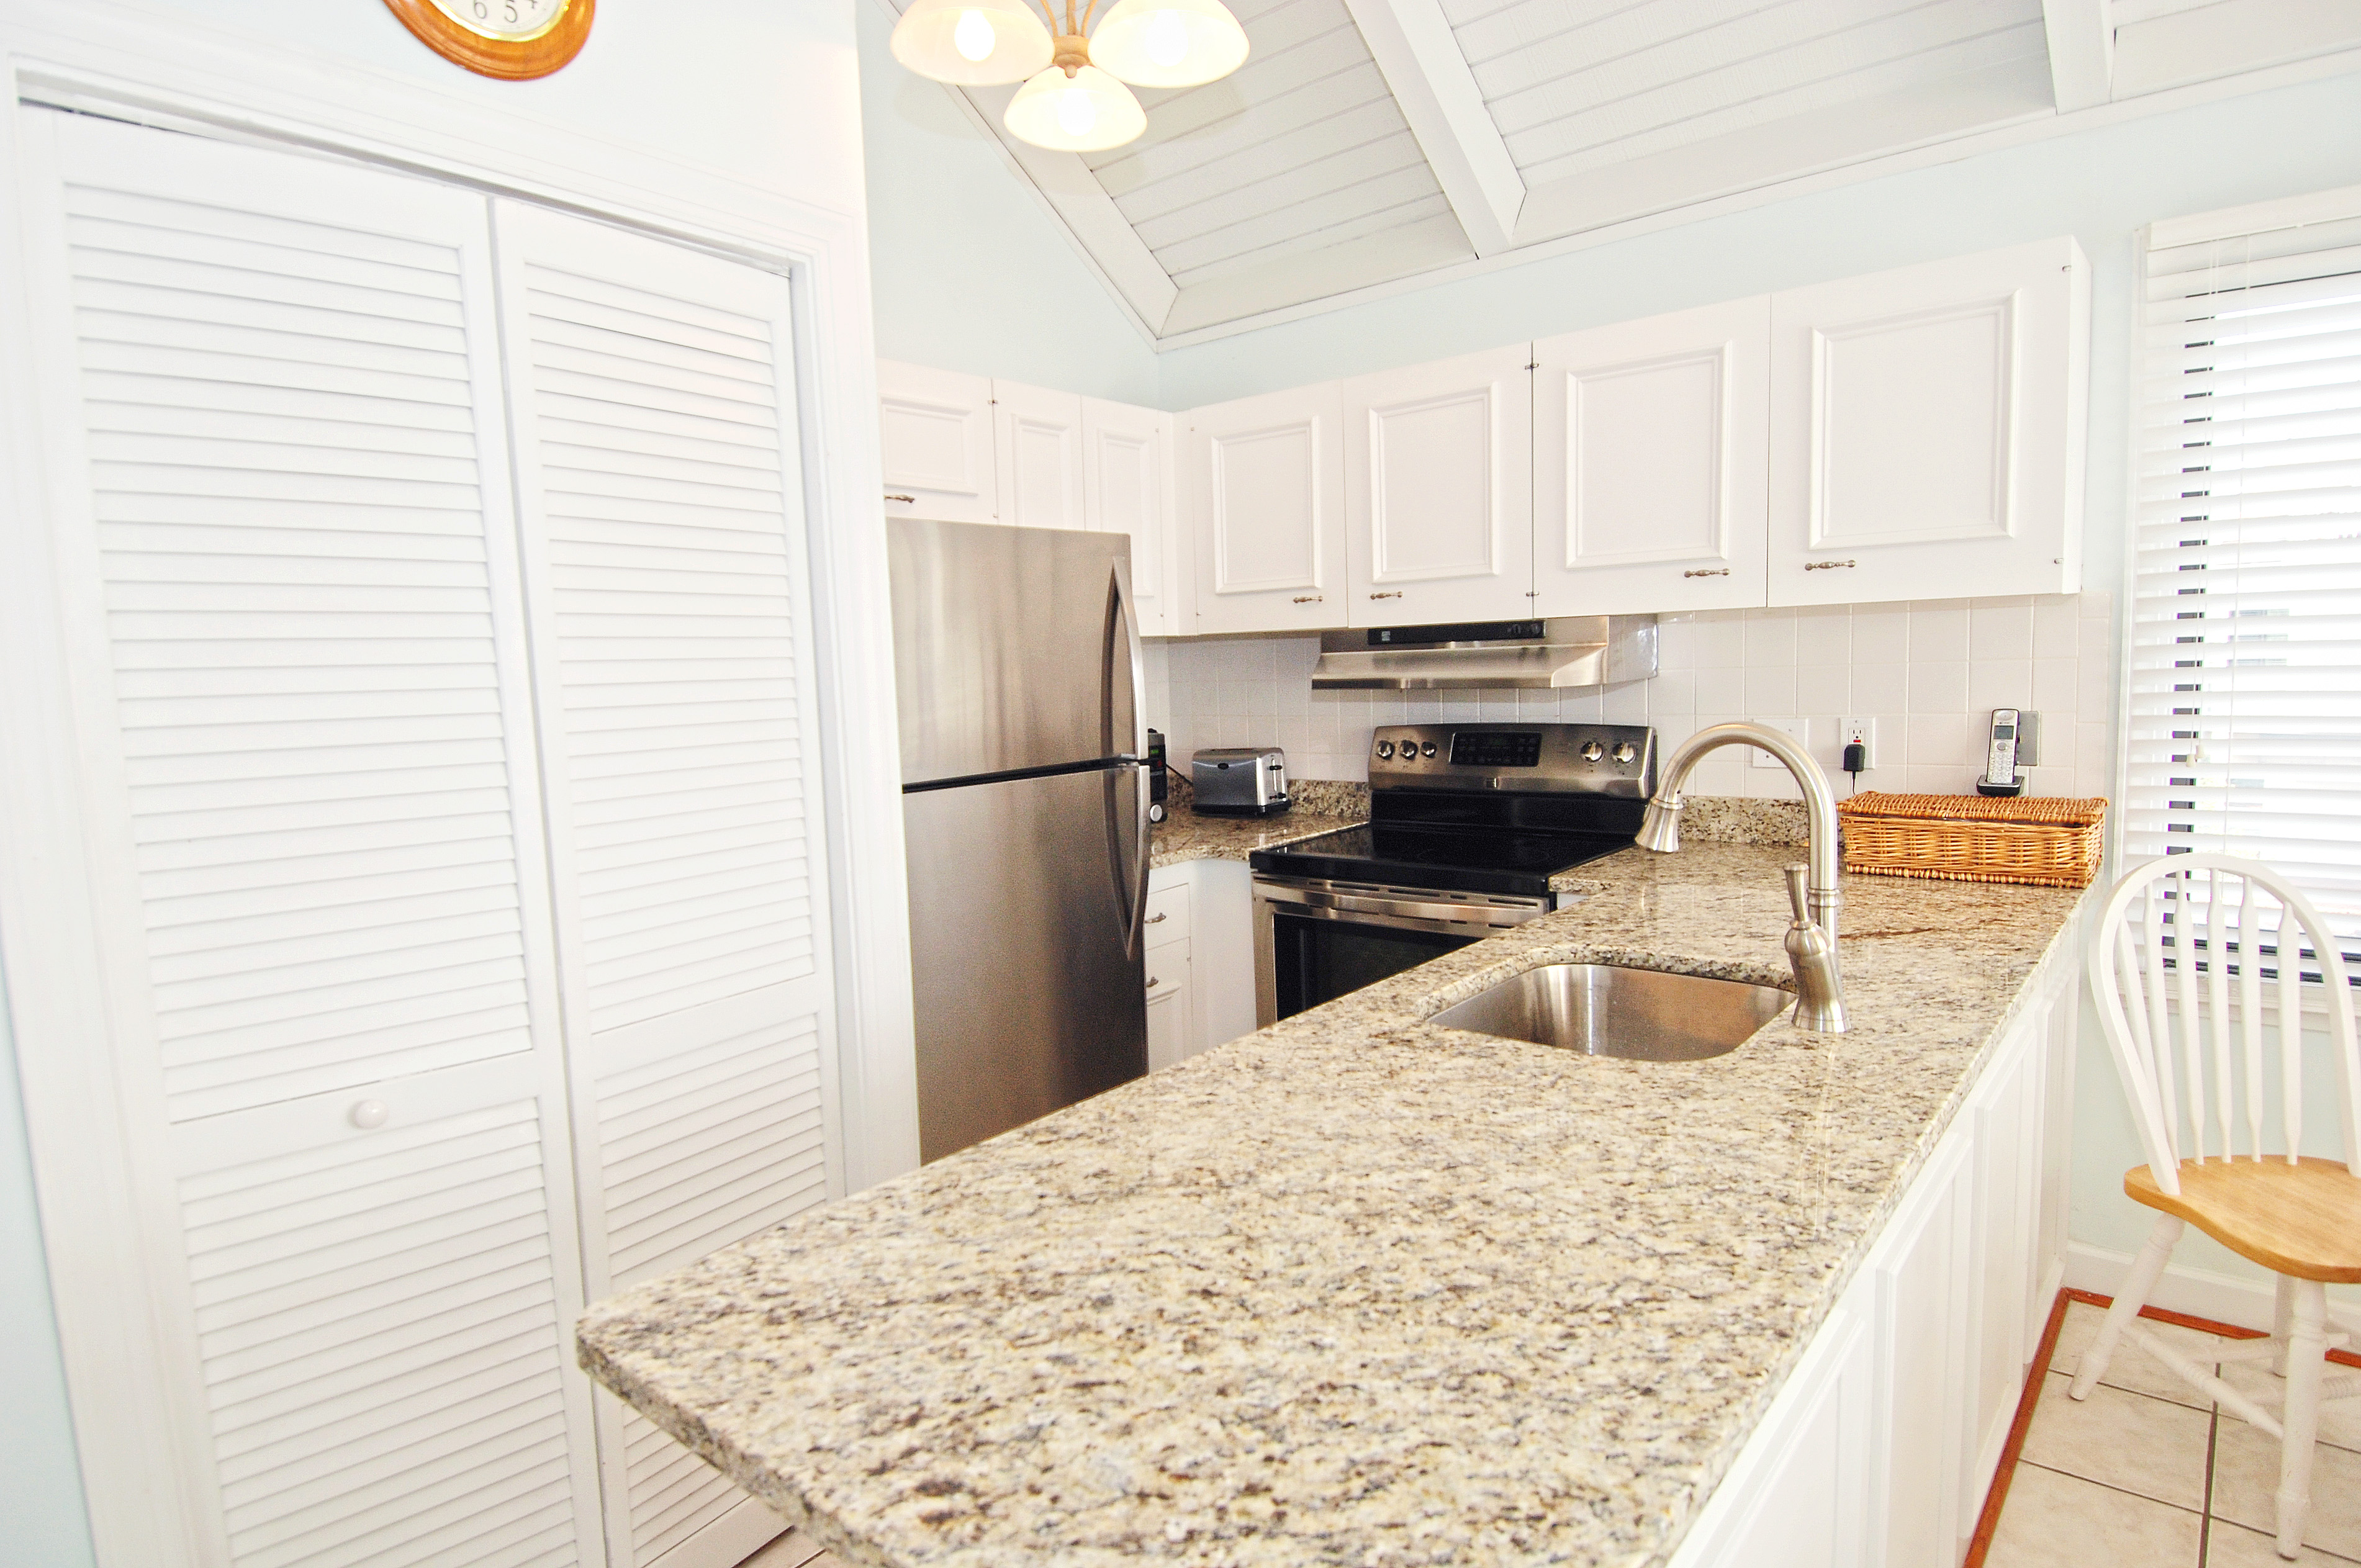 Granite counter tops, stainless steel appliances, and a washer/dryer closet are part of this remodeled kitchen.